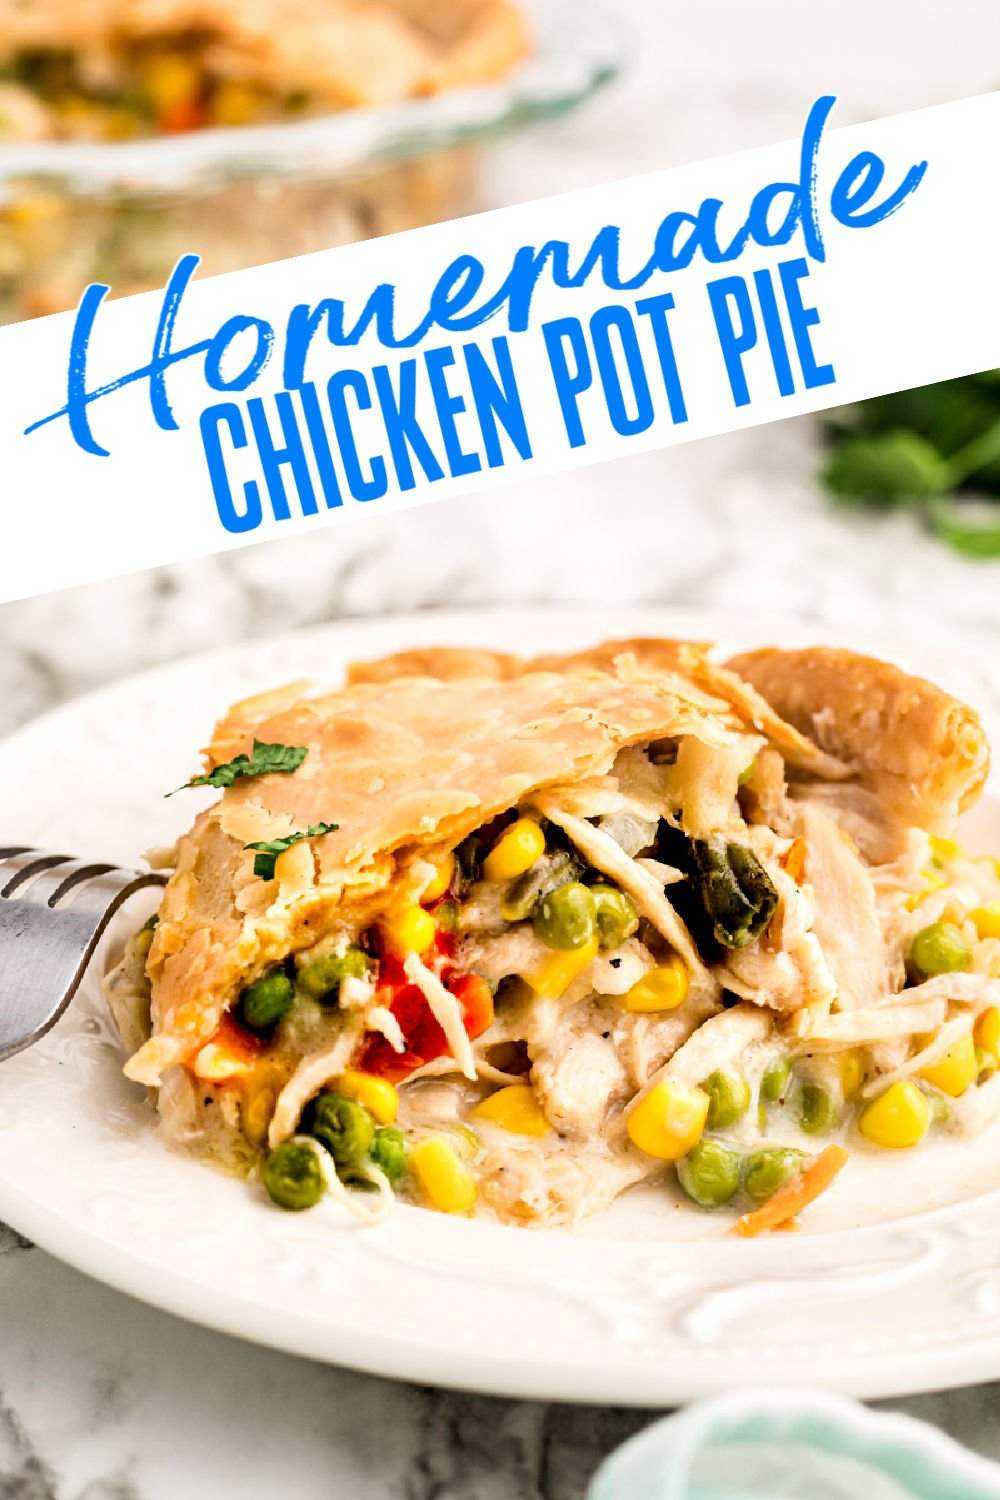 Chicken Pot Pie is my idea of comfort food! Tender chicken, vegetables, and gravy, baked into a flaky pastry crust. This homemade, easy chicken pot pie recipe is a great way to use up leftover chicken, too! | www.persnicketyplates.com